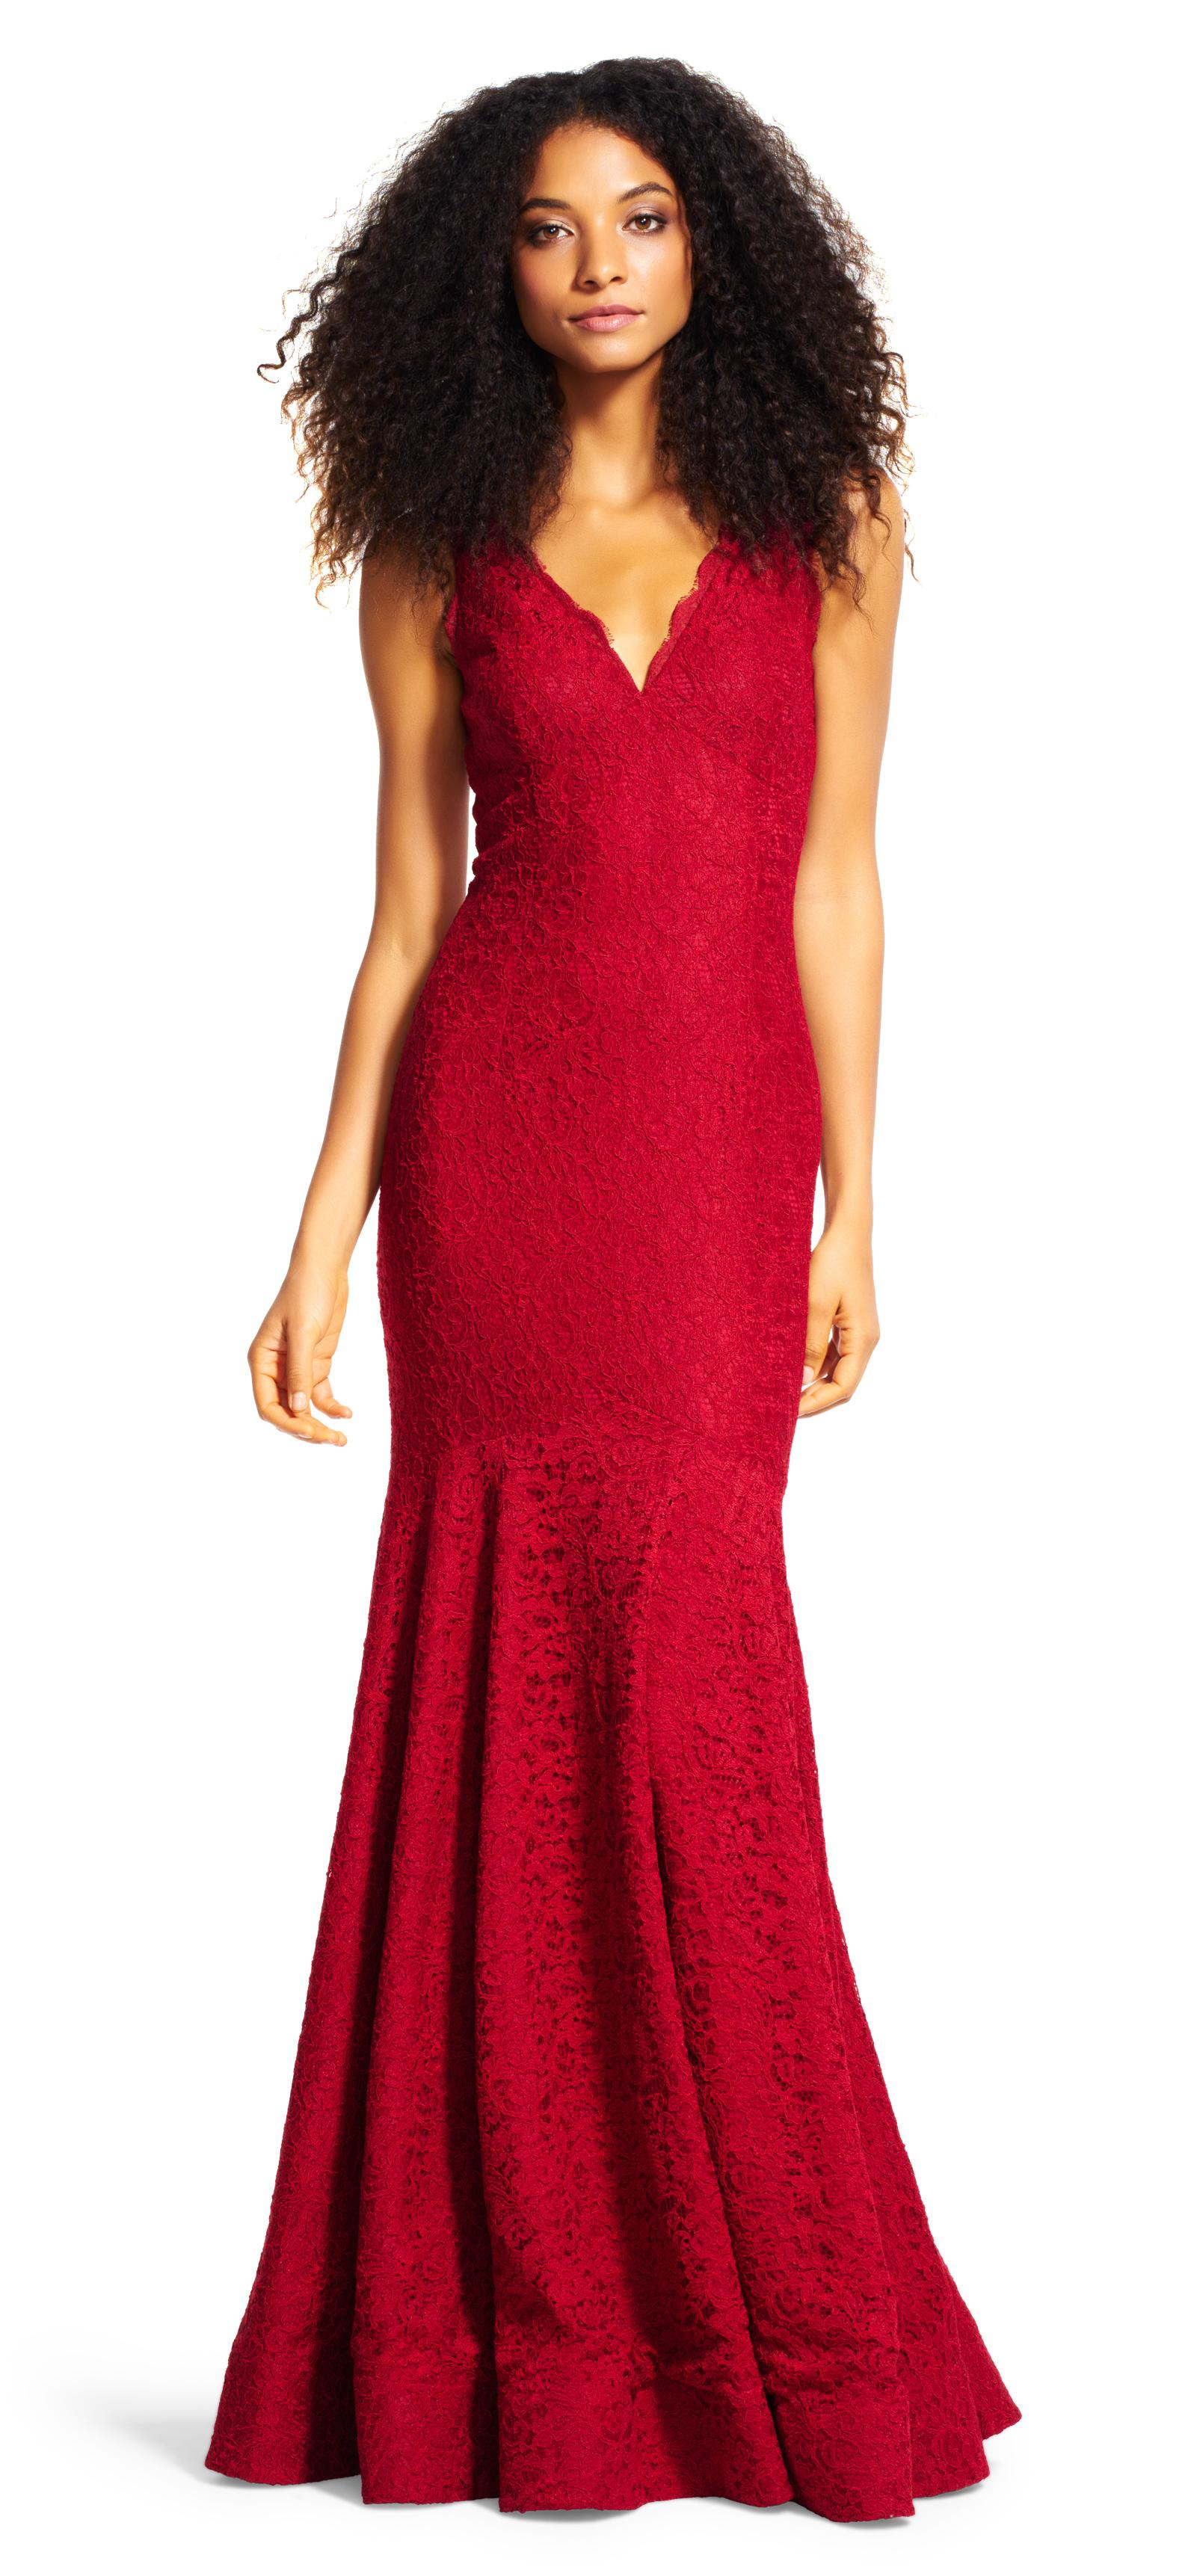 Adrianna Papell Evening Gowns – Fashion dresses